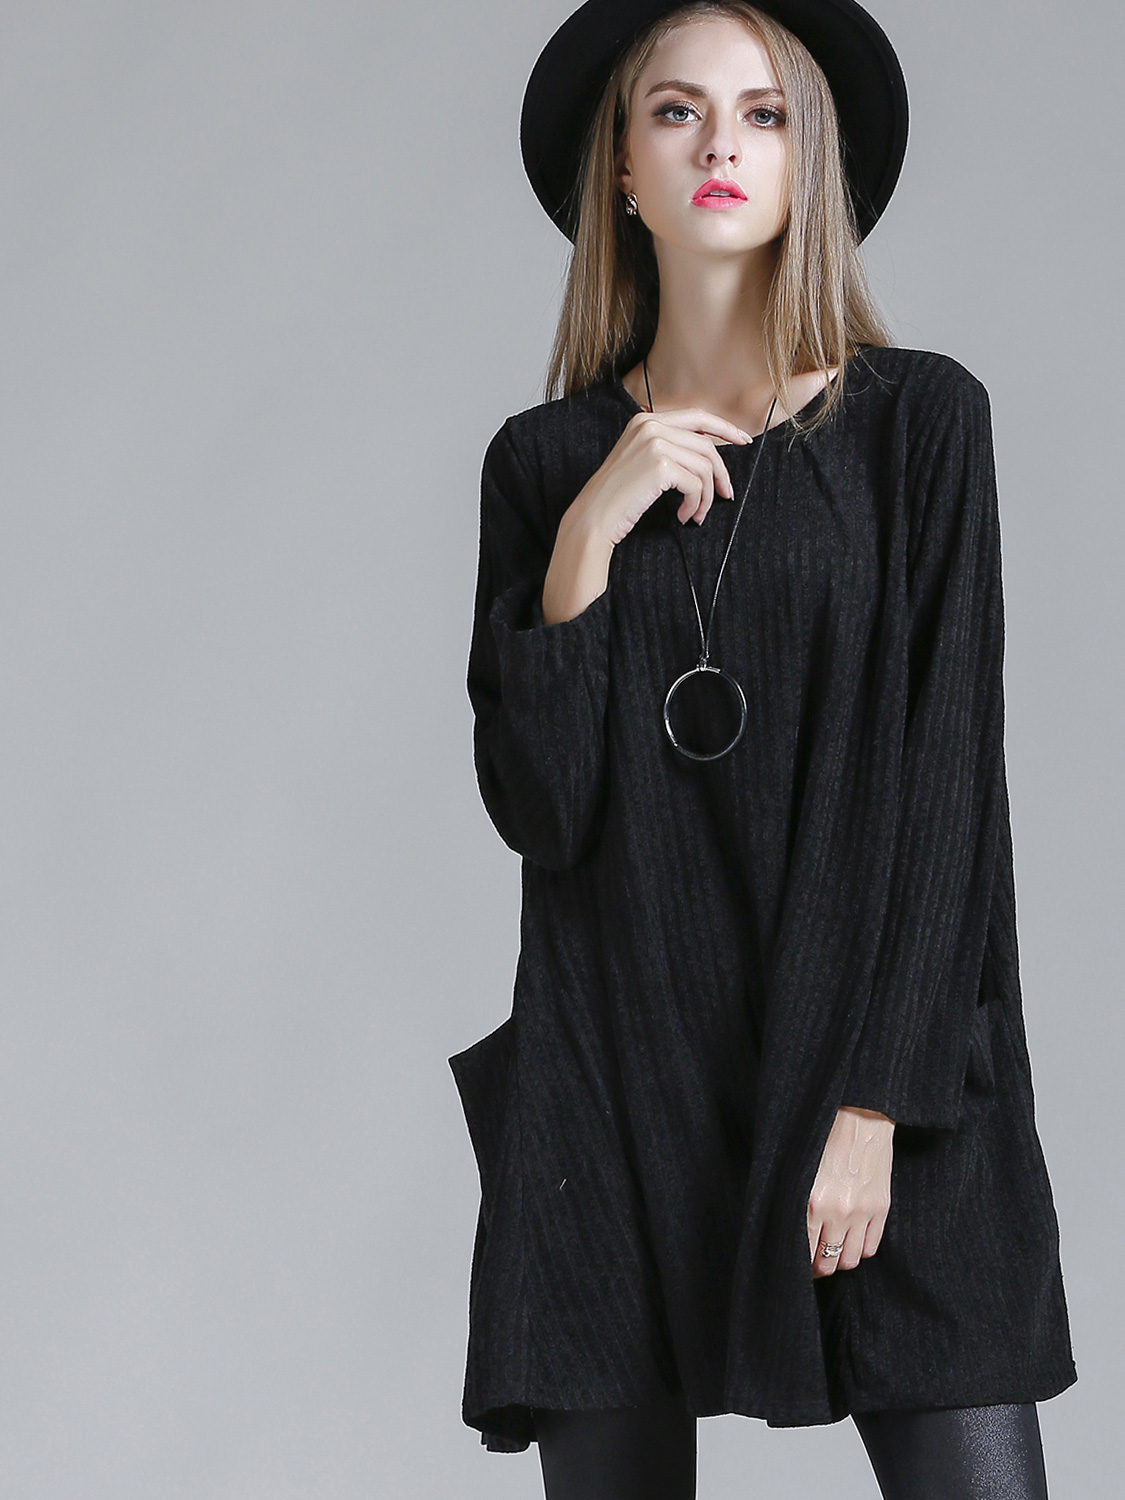 e6869c6895 US$ 50 - OneBling Crew Neck Long Sleeve Jumper Dress with Patch Pockets -  www.onebling.com